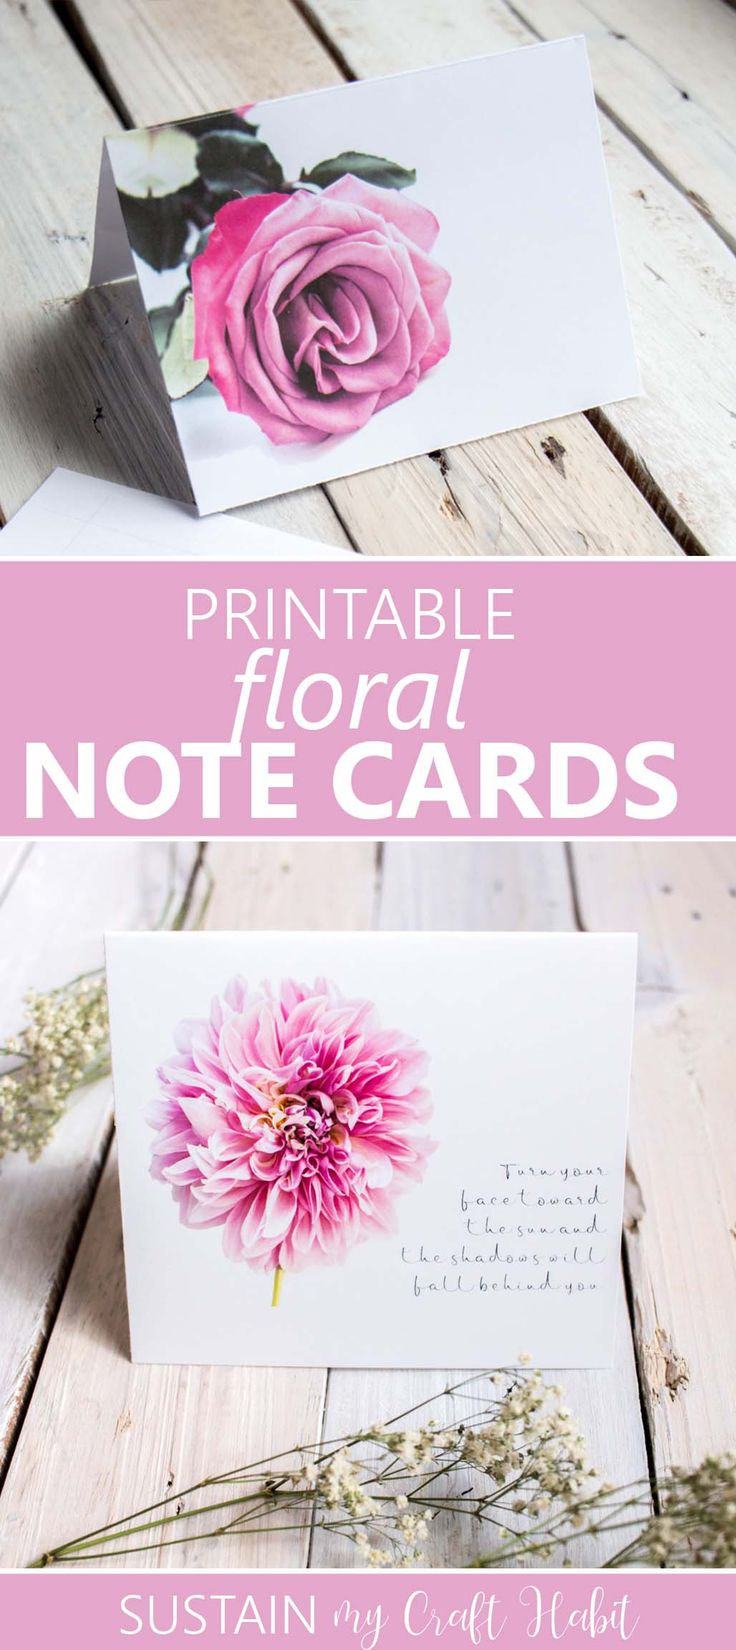 design printable invitation cards online free%0A     best Printables images on Pinterest   Graphics fairy  Botanical  drawings and Botanical illustration